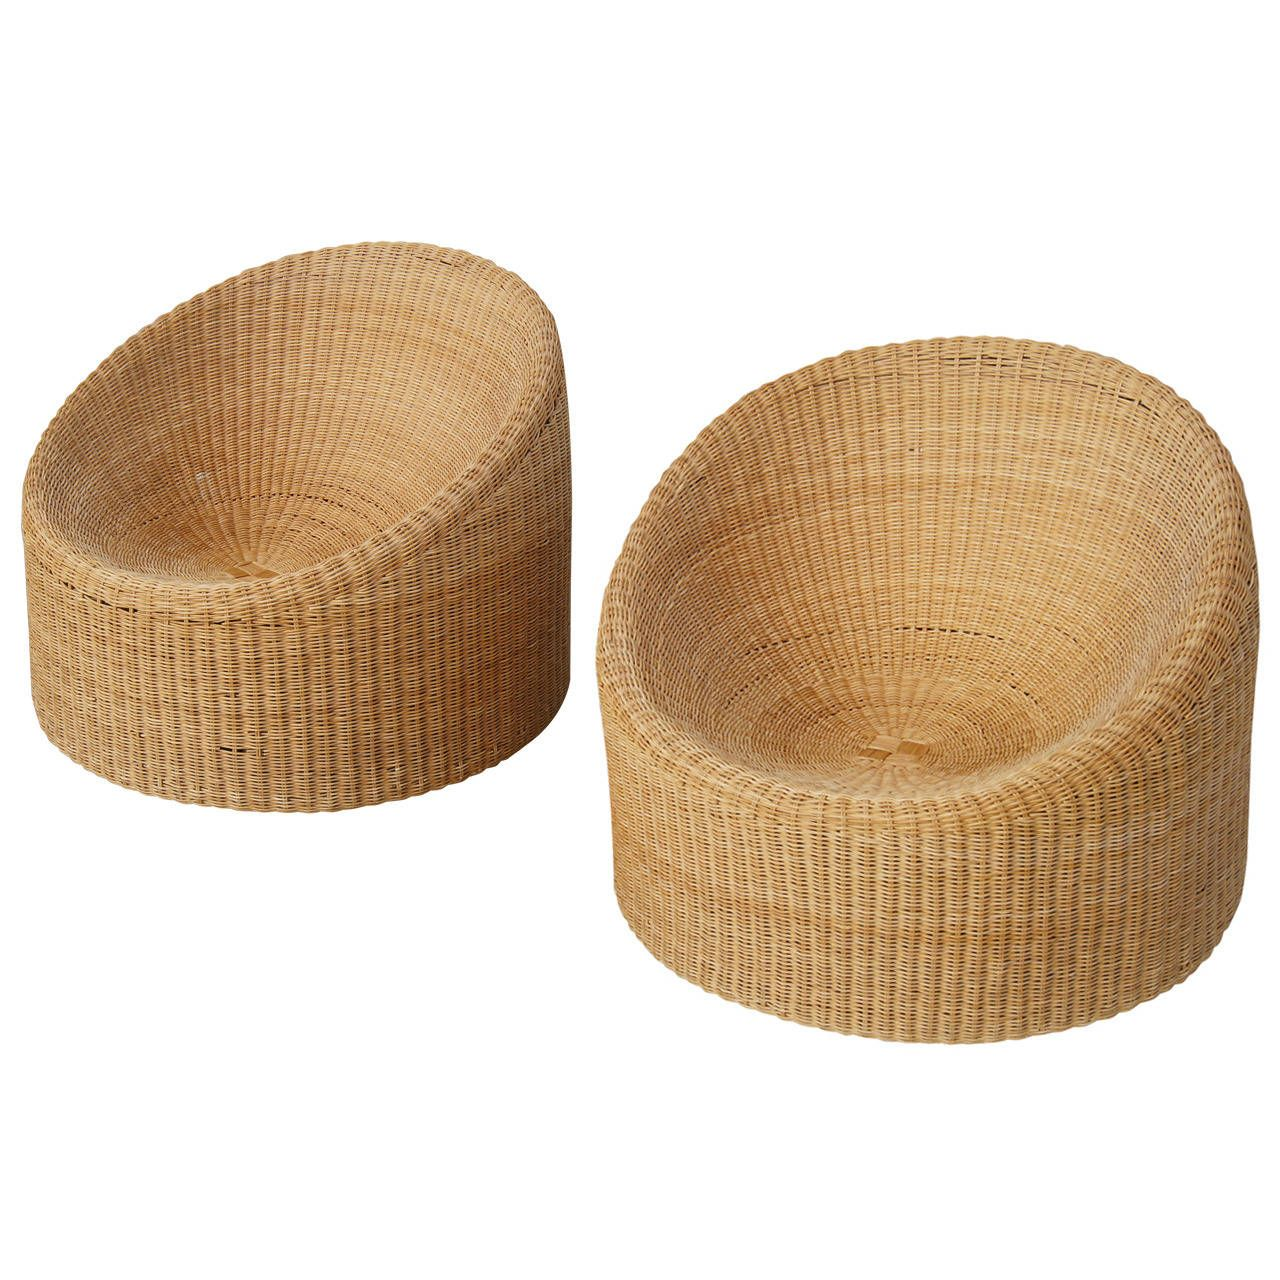 Pair Of Wicker Chairs Designed In Finland By Famed Designer Eero Aarnio, A  Unique Round Design Composed Of Woven Wicker.